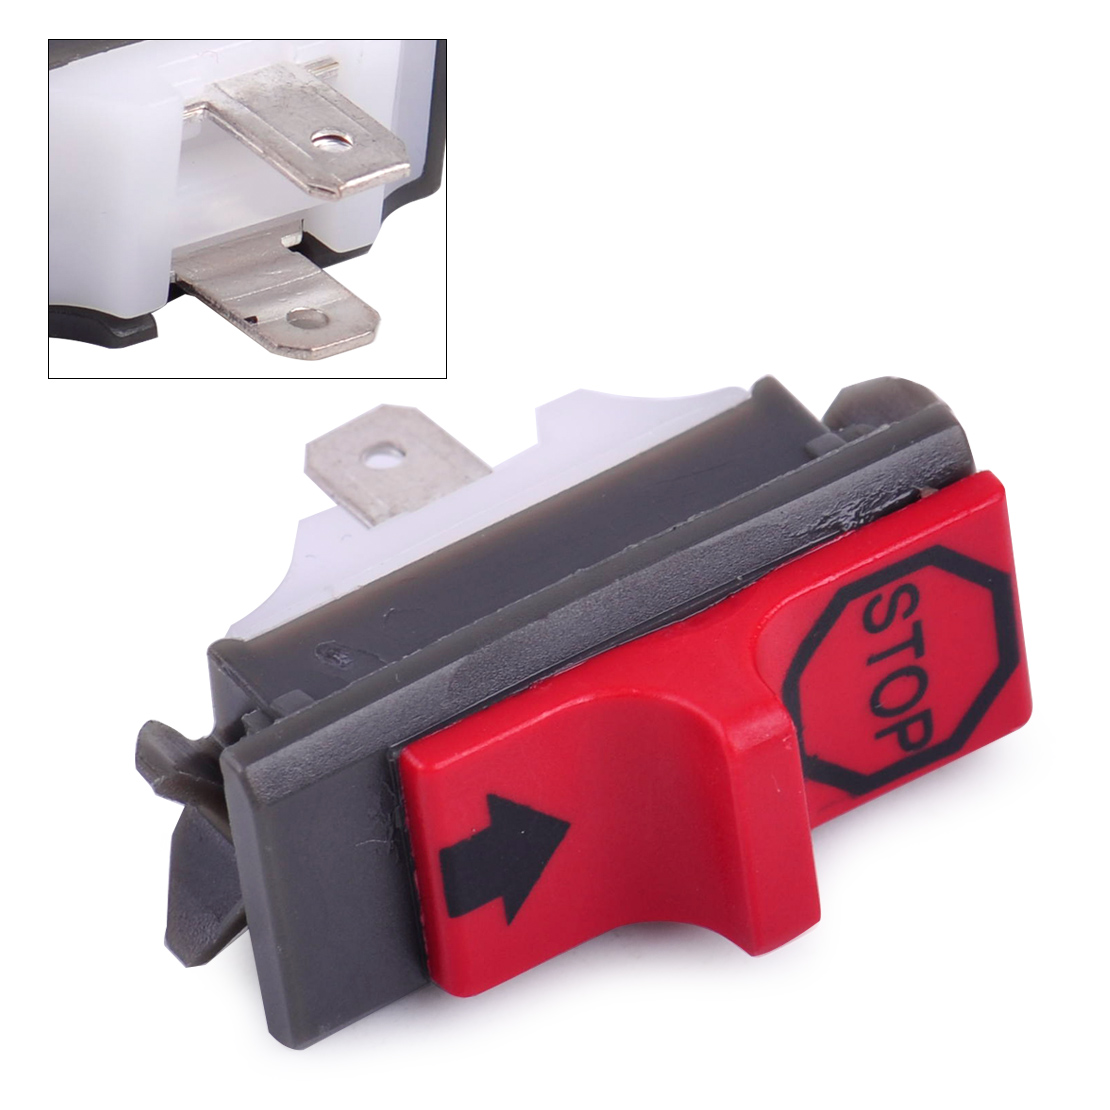 LETAOSK High Quality Kill Stop Switch On-off Fit For Husqvarna 365 371 372 372XP 336 Chainsaw